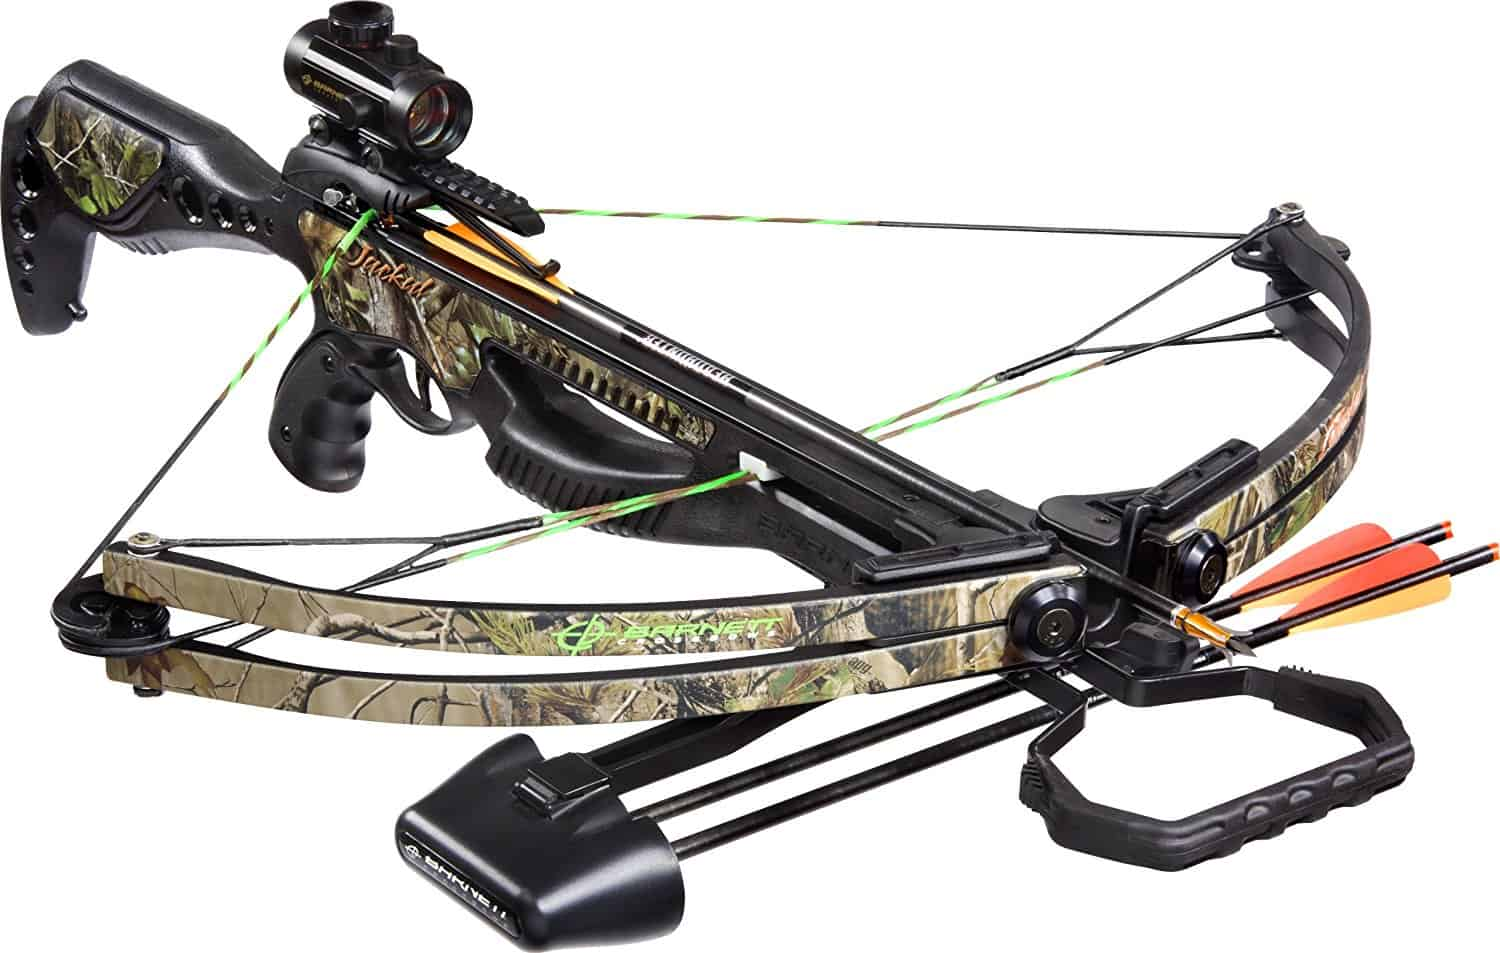 Barnett Jackal Crossbow Review - The Best for First Timers